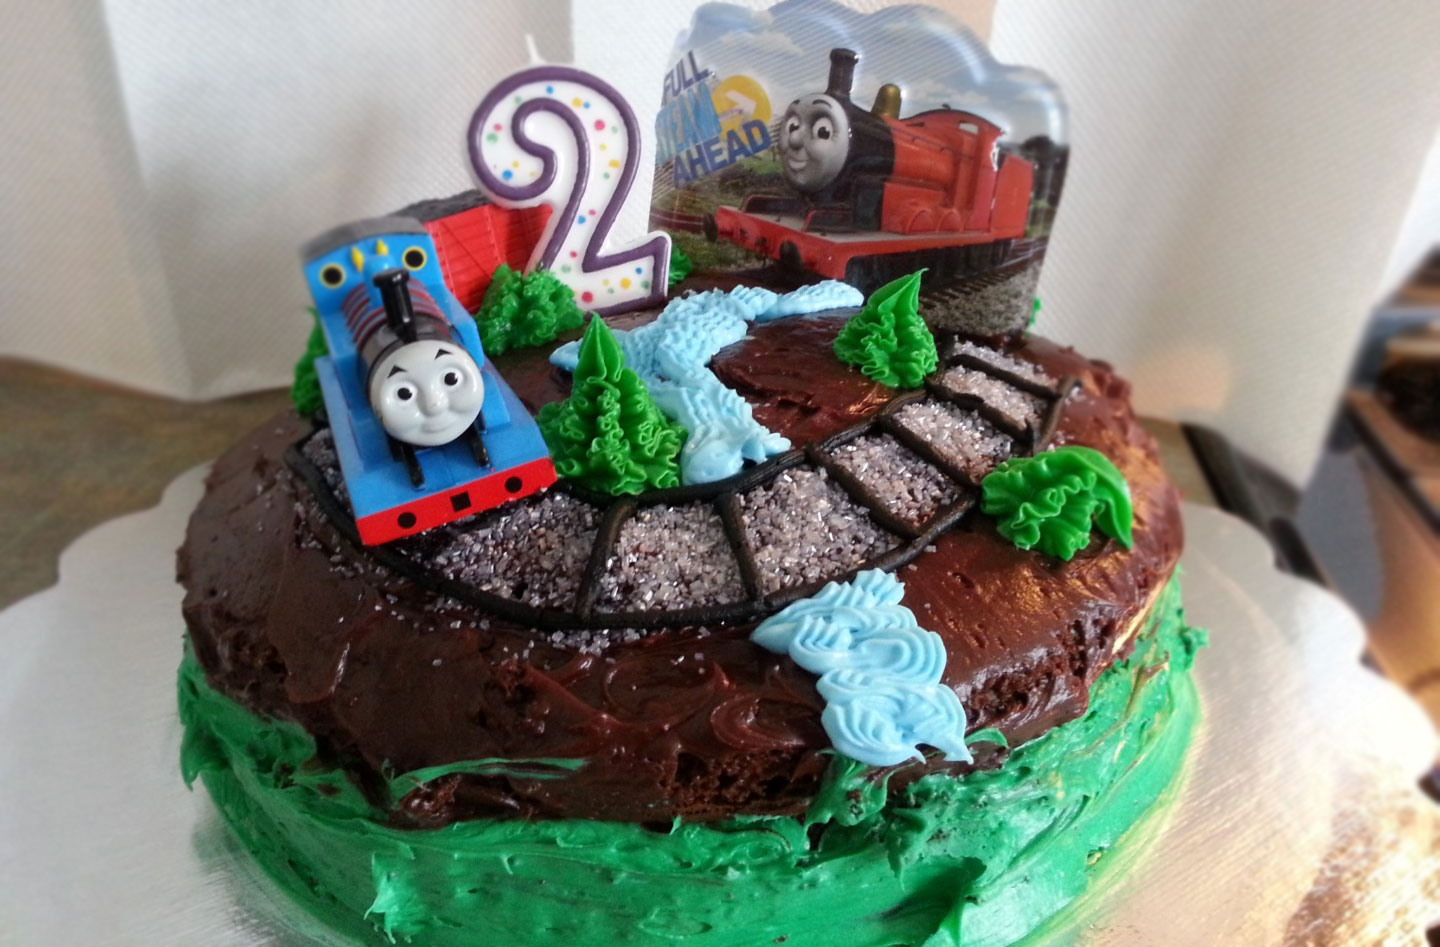 Second birthday Cake – Choo Choo Train!